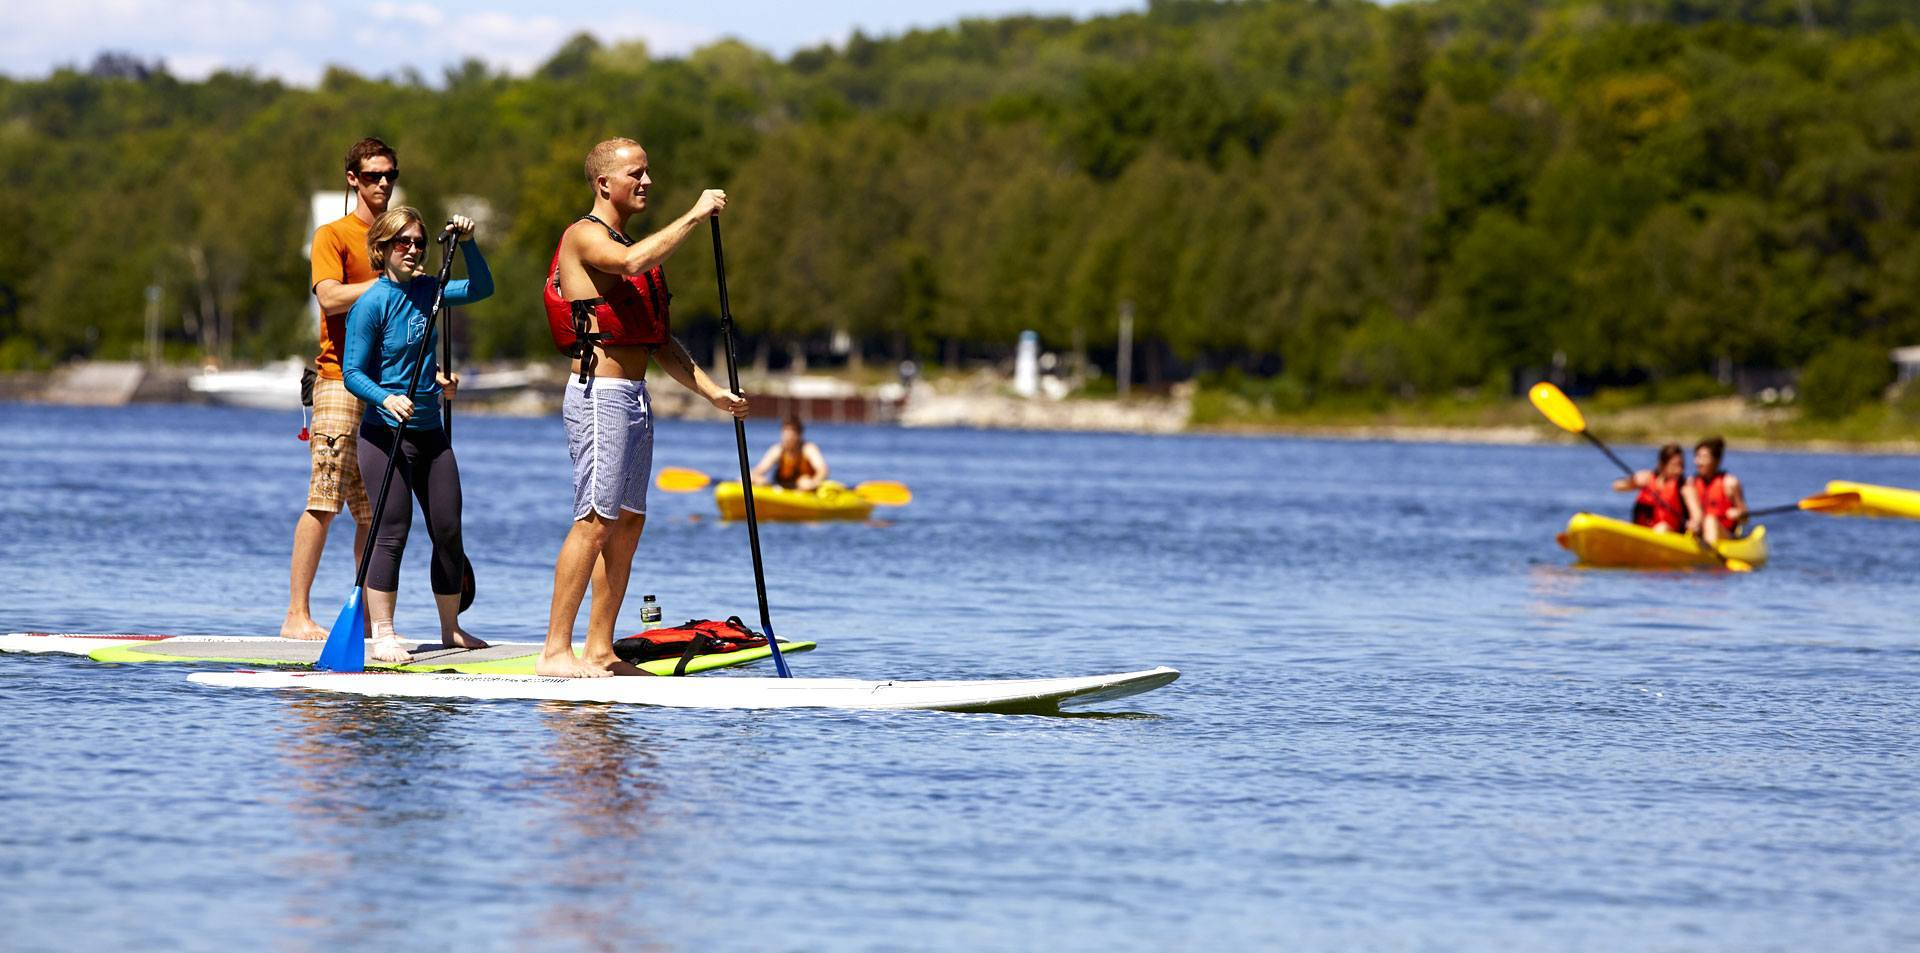 Last minute vacation spots in Wisconsin you may not have heard about